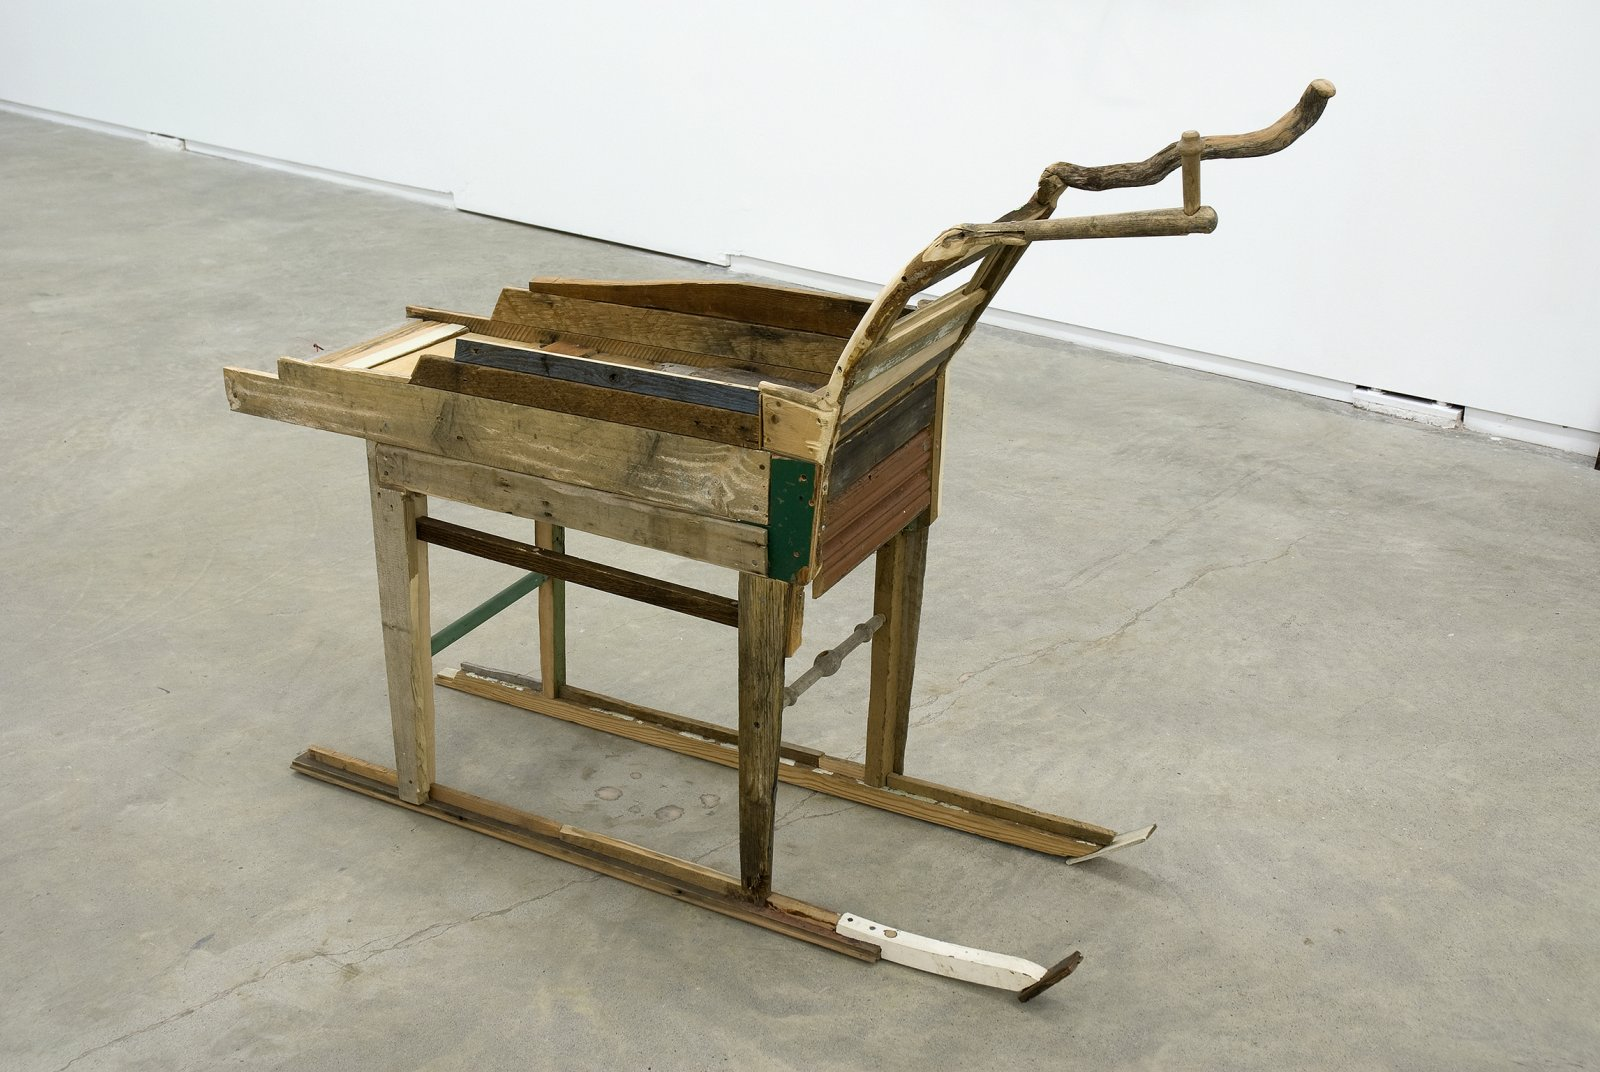 Gareth Moore, Donkey, Sculpture as Companion (With Device to Stop Braying) (from Uncertain Pilgrimage), 2006–2009, found wood, nails, screws, twine, stone, 47 x 56 x 18 in. (119 x 142 x 46 cm) by Ashes Withyman